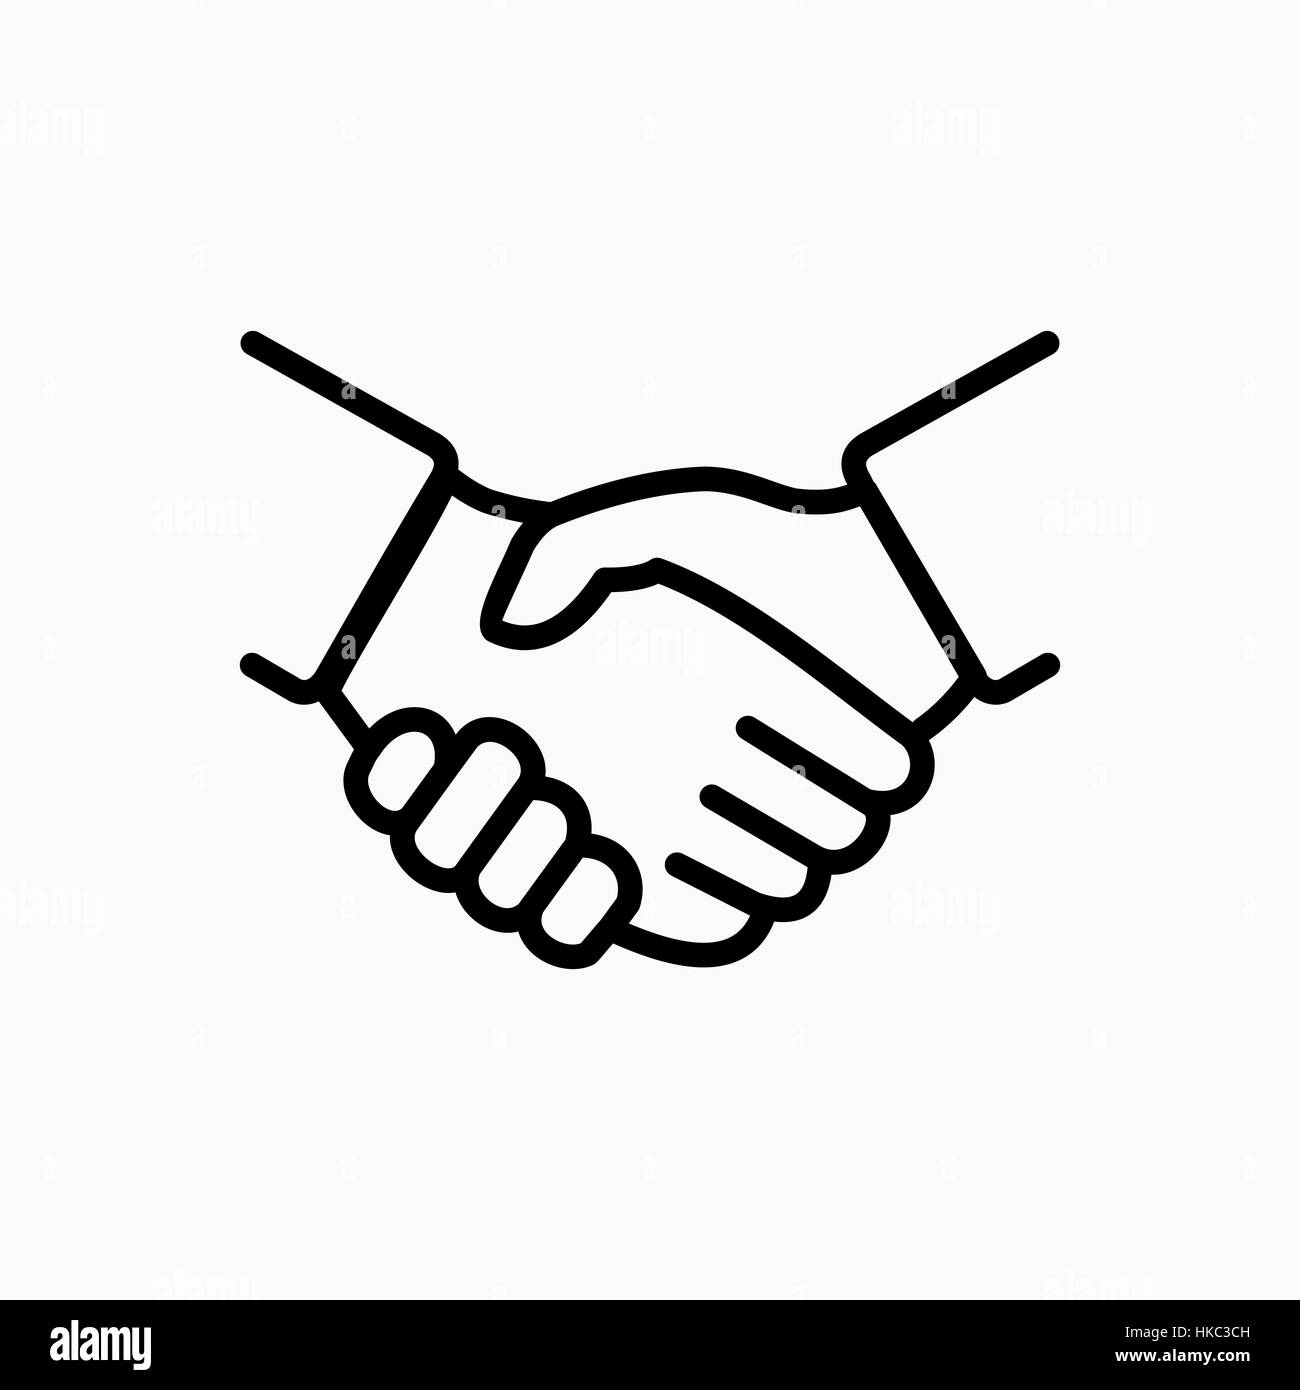 handshake icon simple vector illustration deal or partner agreement stock vector art